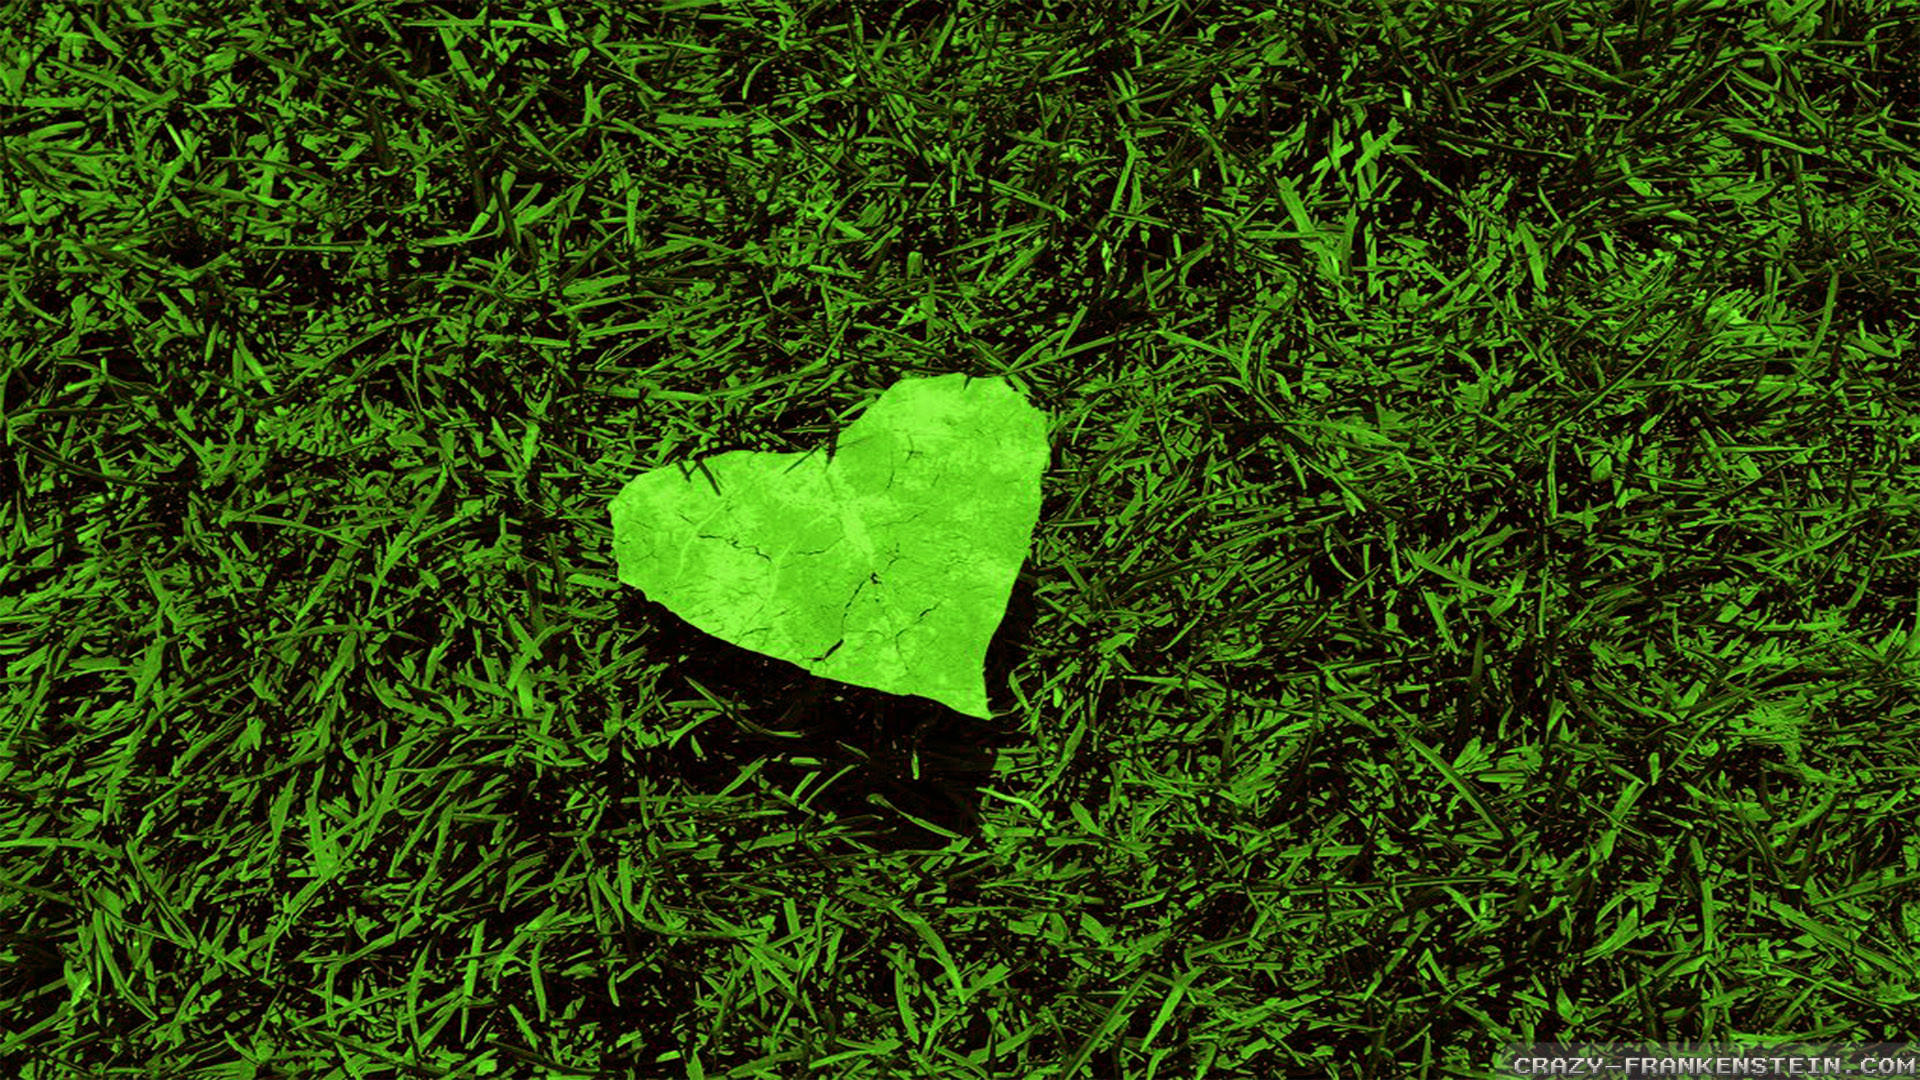 nature wallpapers heart leaf resolution crazy background frankenstein widescreen res wallpapertag related